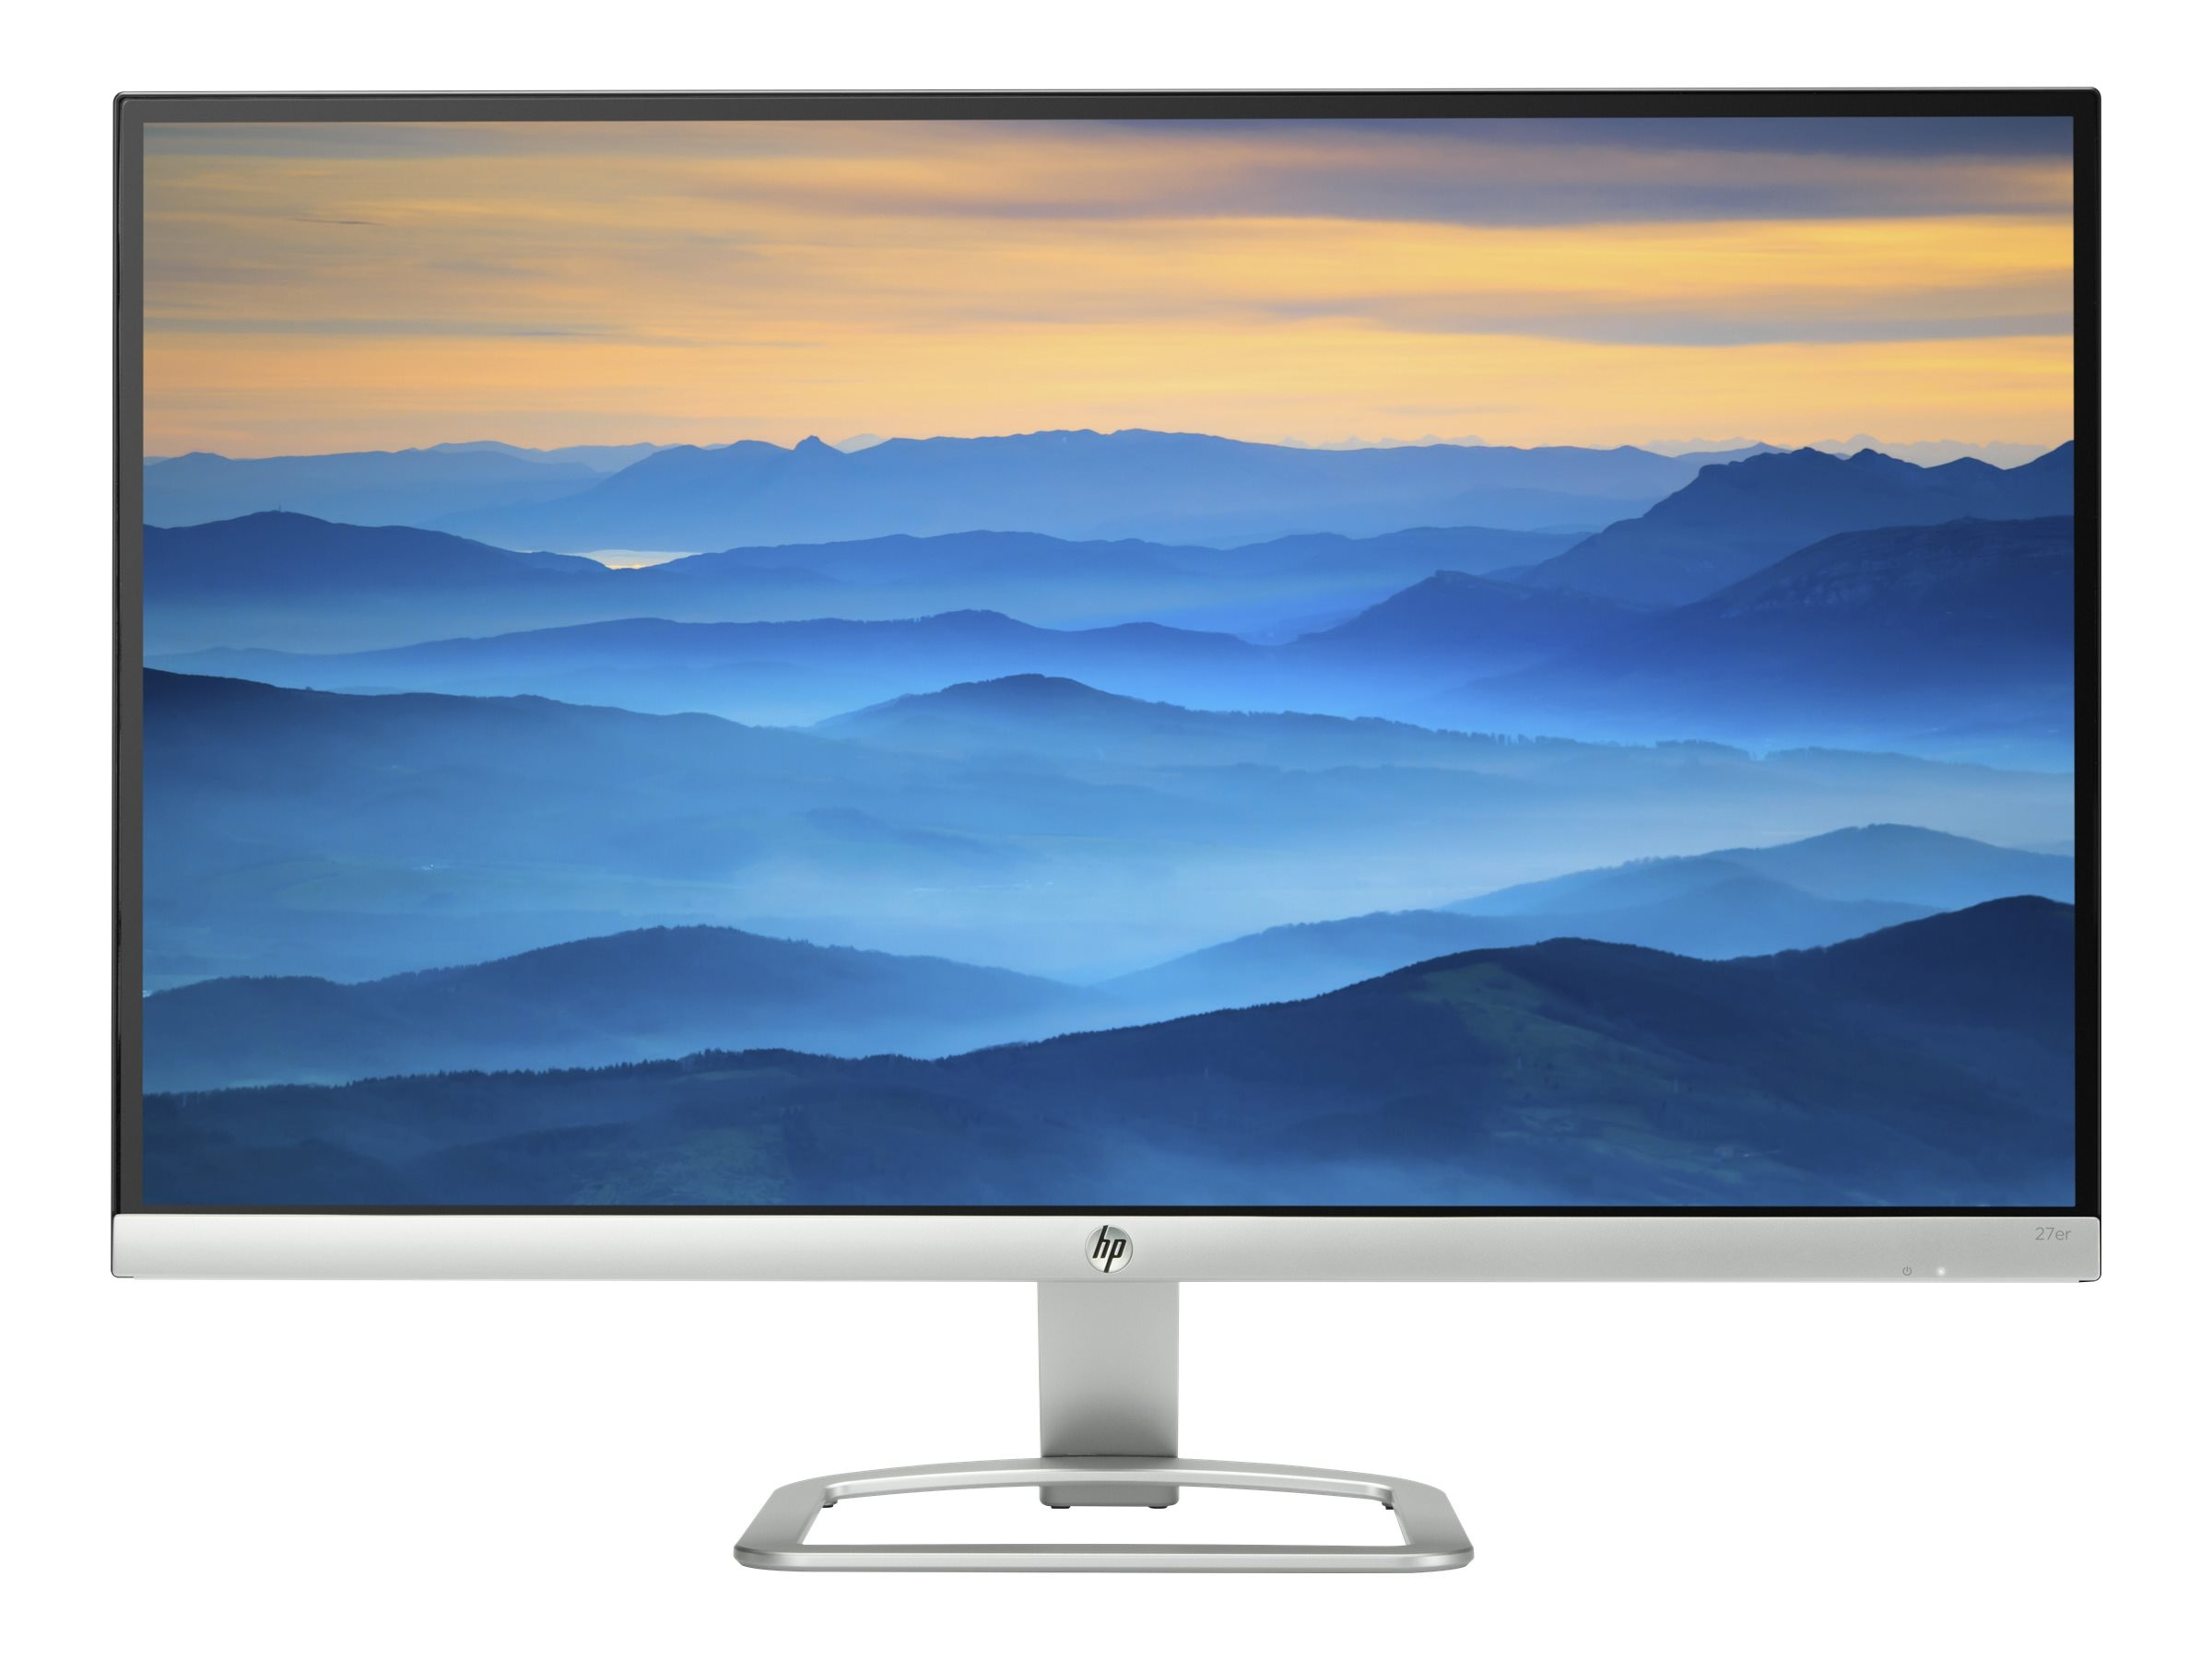 HP 27 27ER Full HD LED-LCD Monitor, Silver, T3M88AA#ABA